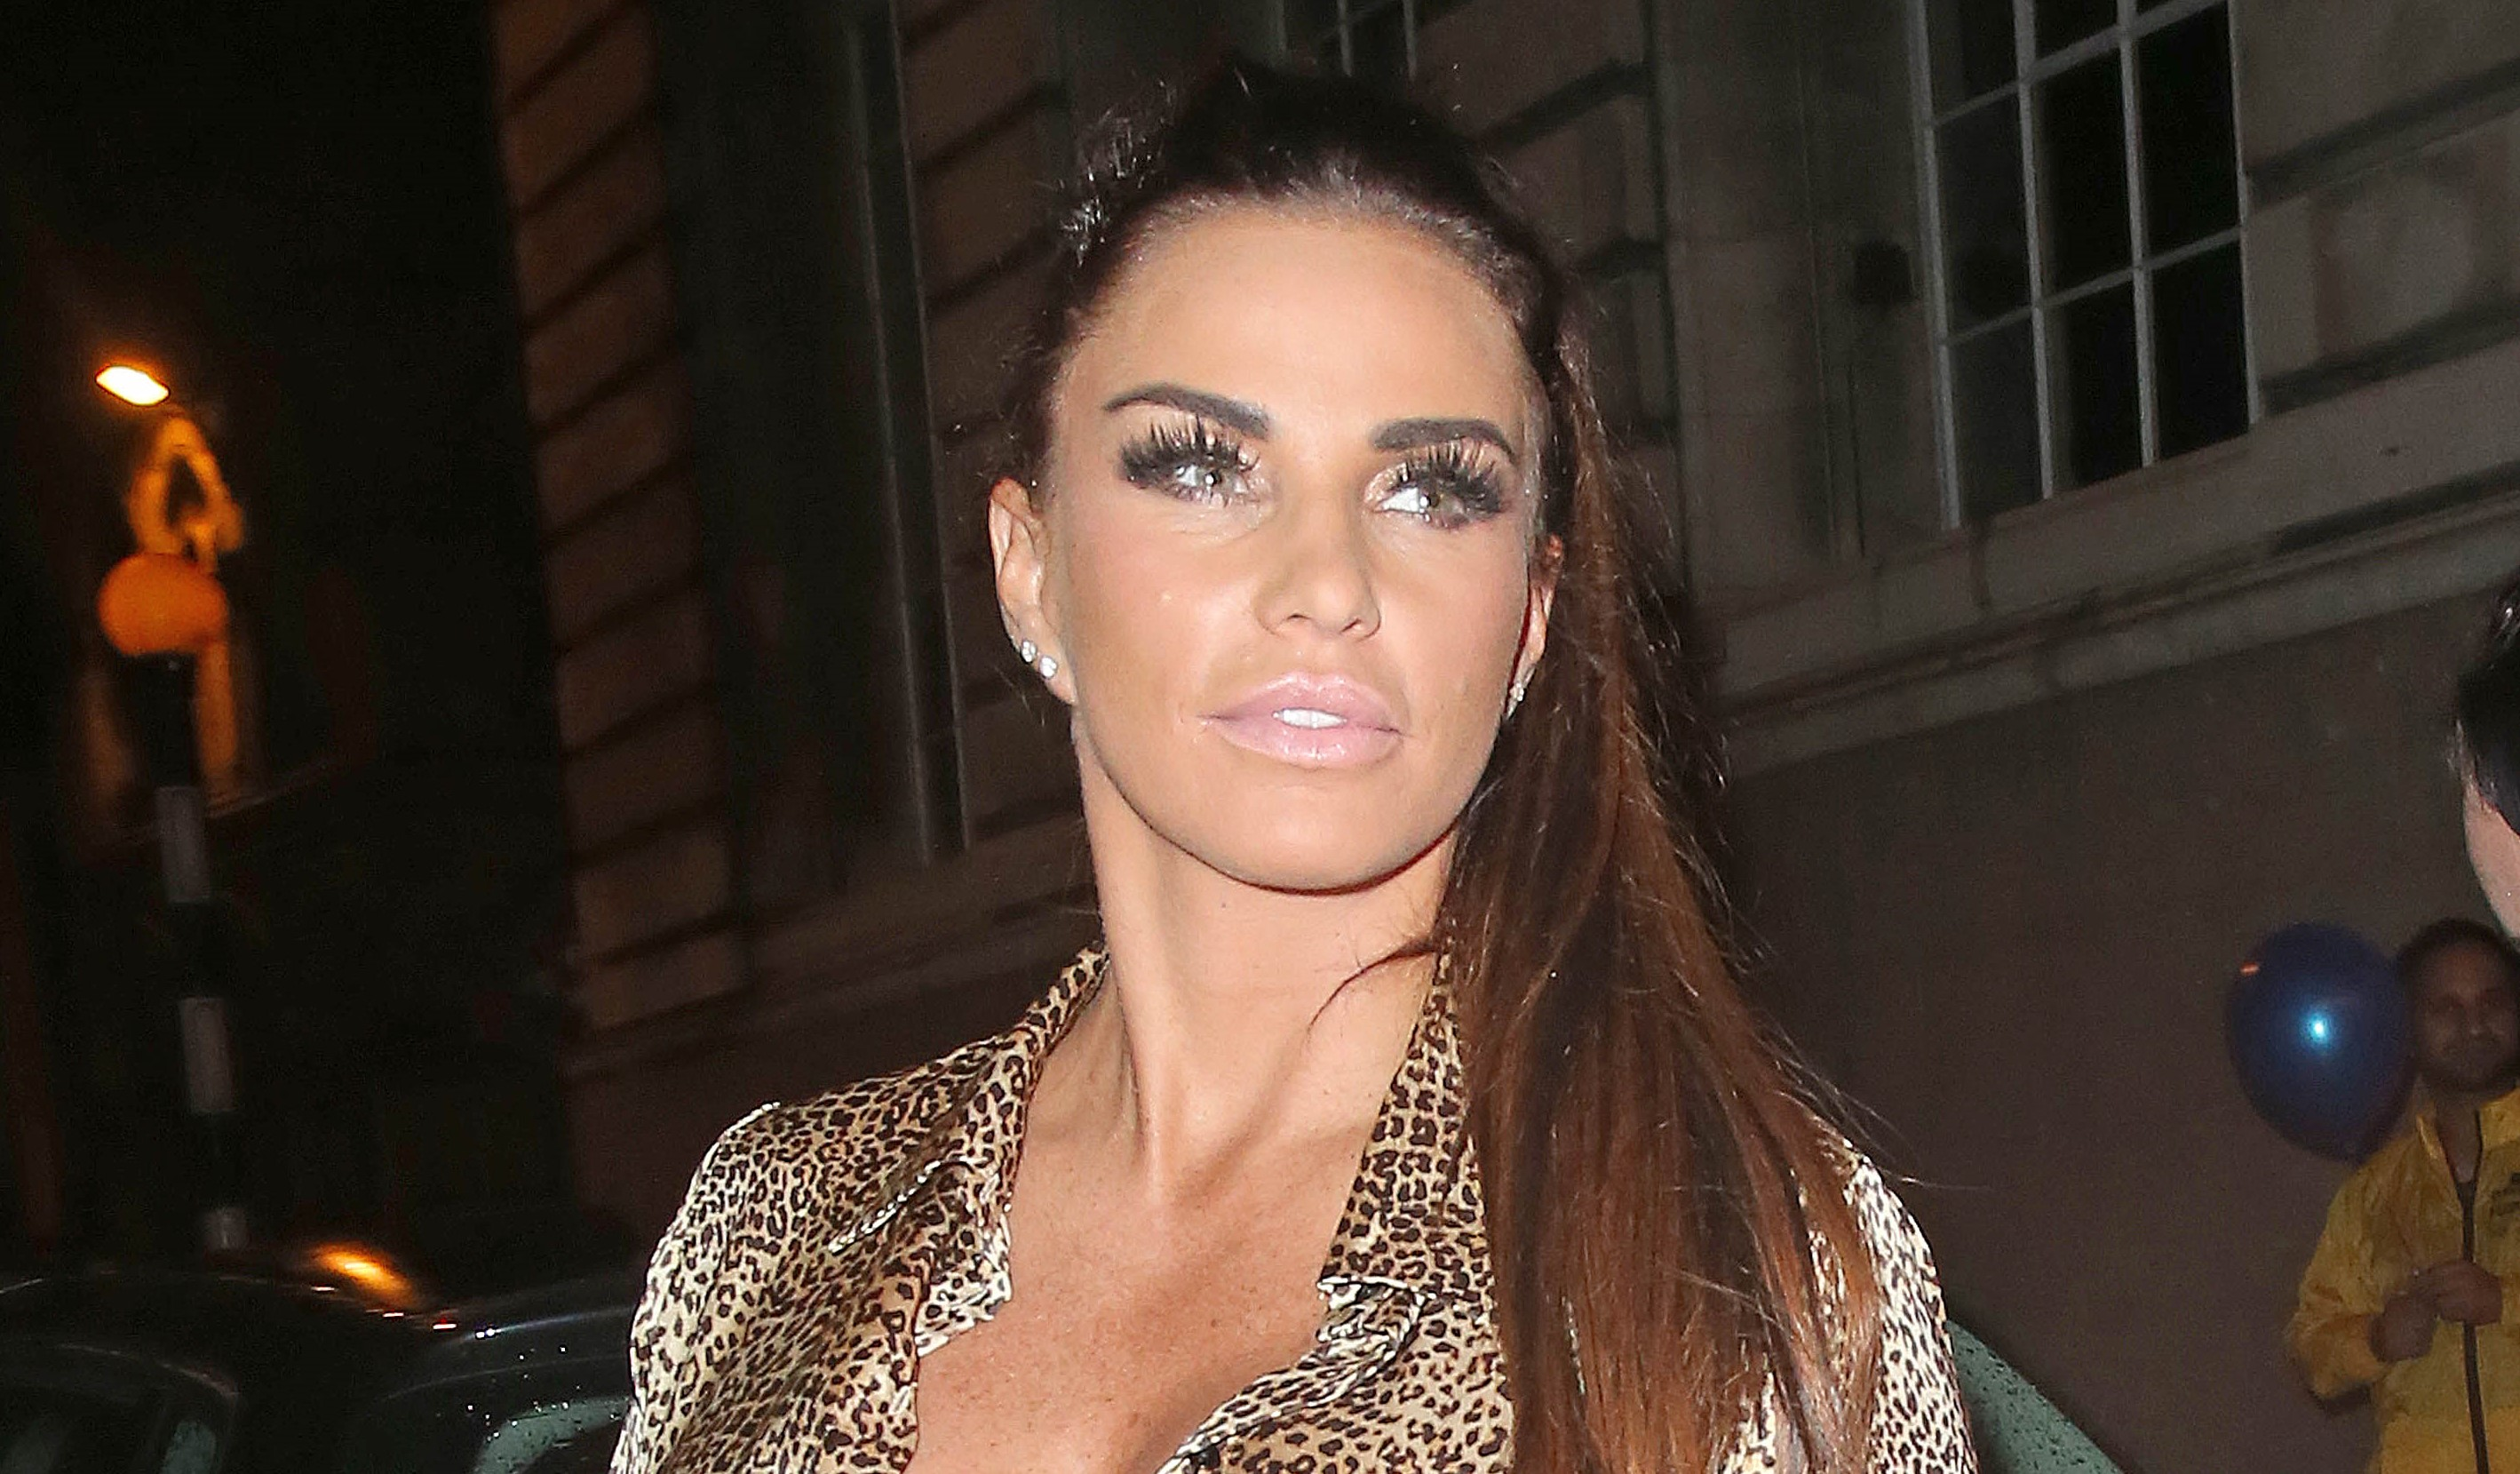 Katie Price 'faces up to £20,000 fine if she fails to get planning permission to build new gym on her property'